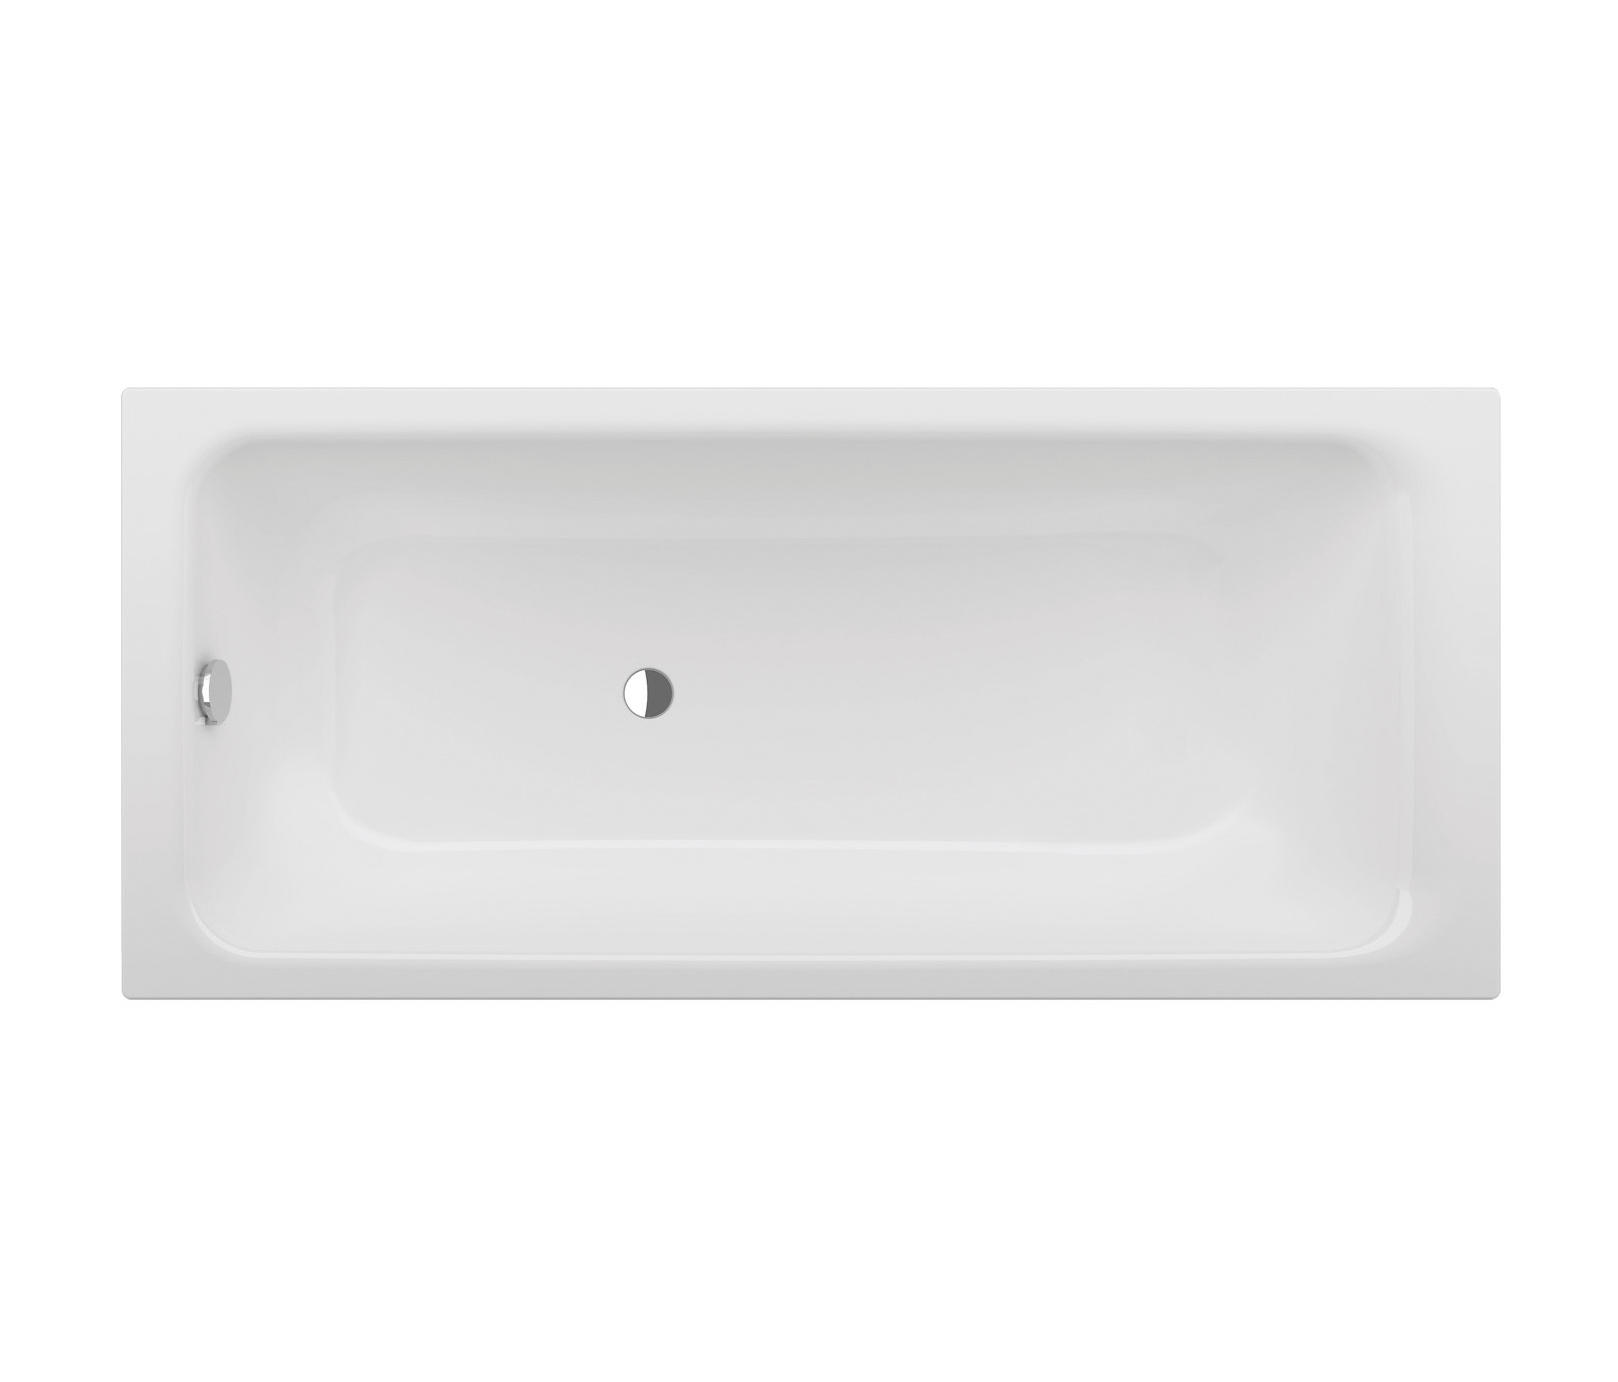 Bette Select Badewannen Betteselect Badewannen Von Bette Architonic